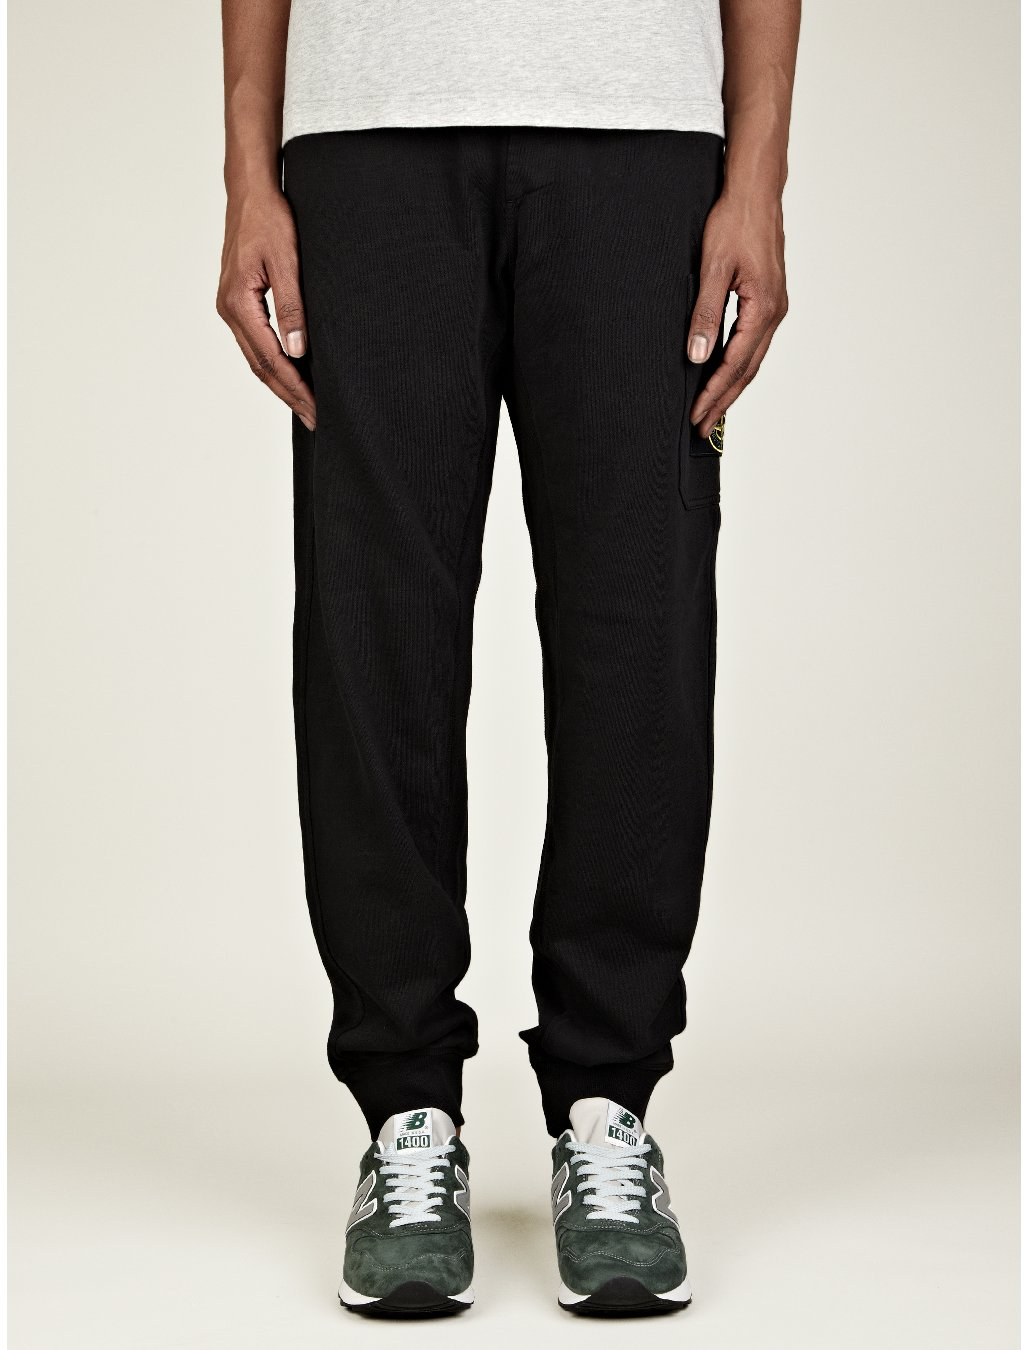 Stone Island Mens Fleece Track Pants in Black for Men - Lyst